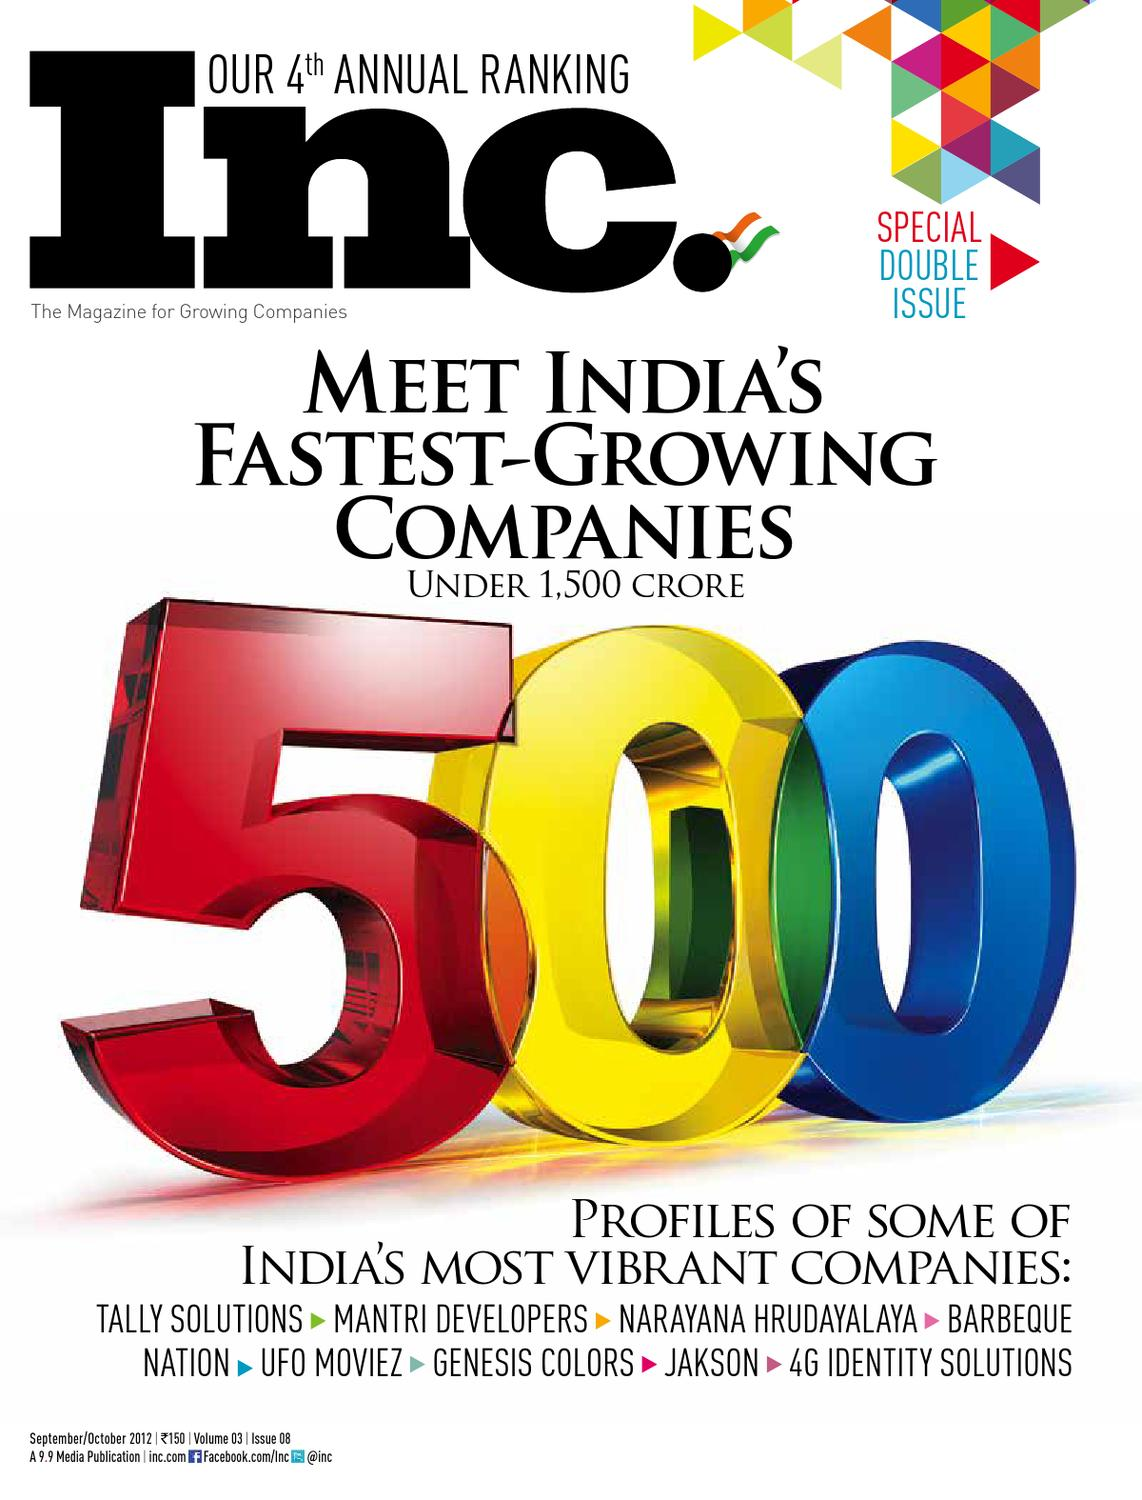 MEET INDIA'S FASTEST GROWING COMPANIES UNDER 1,500 CRORE by